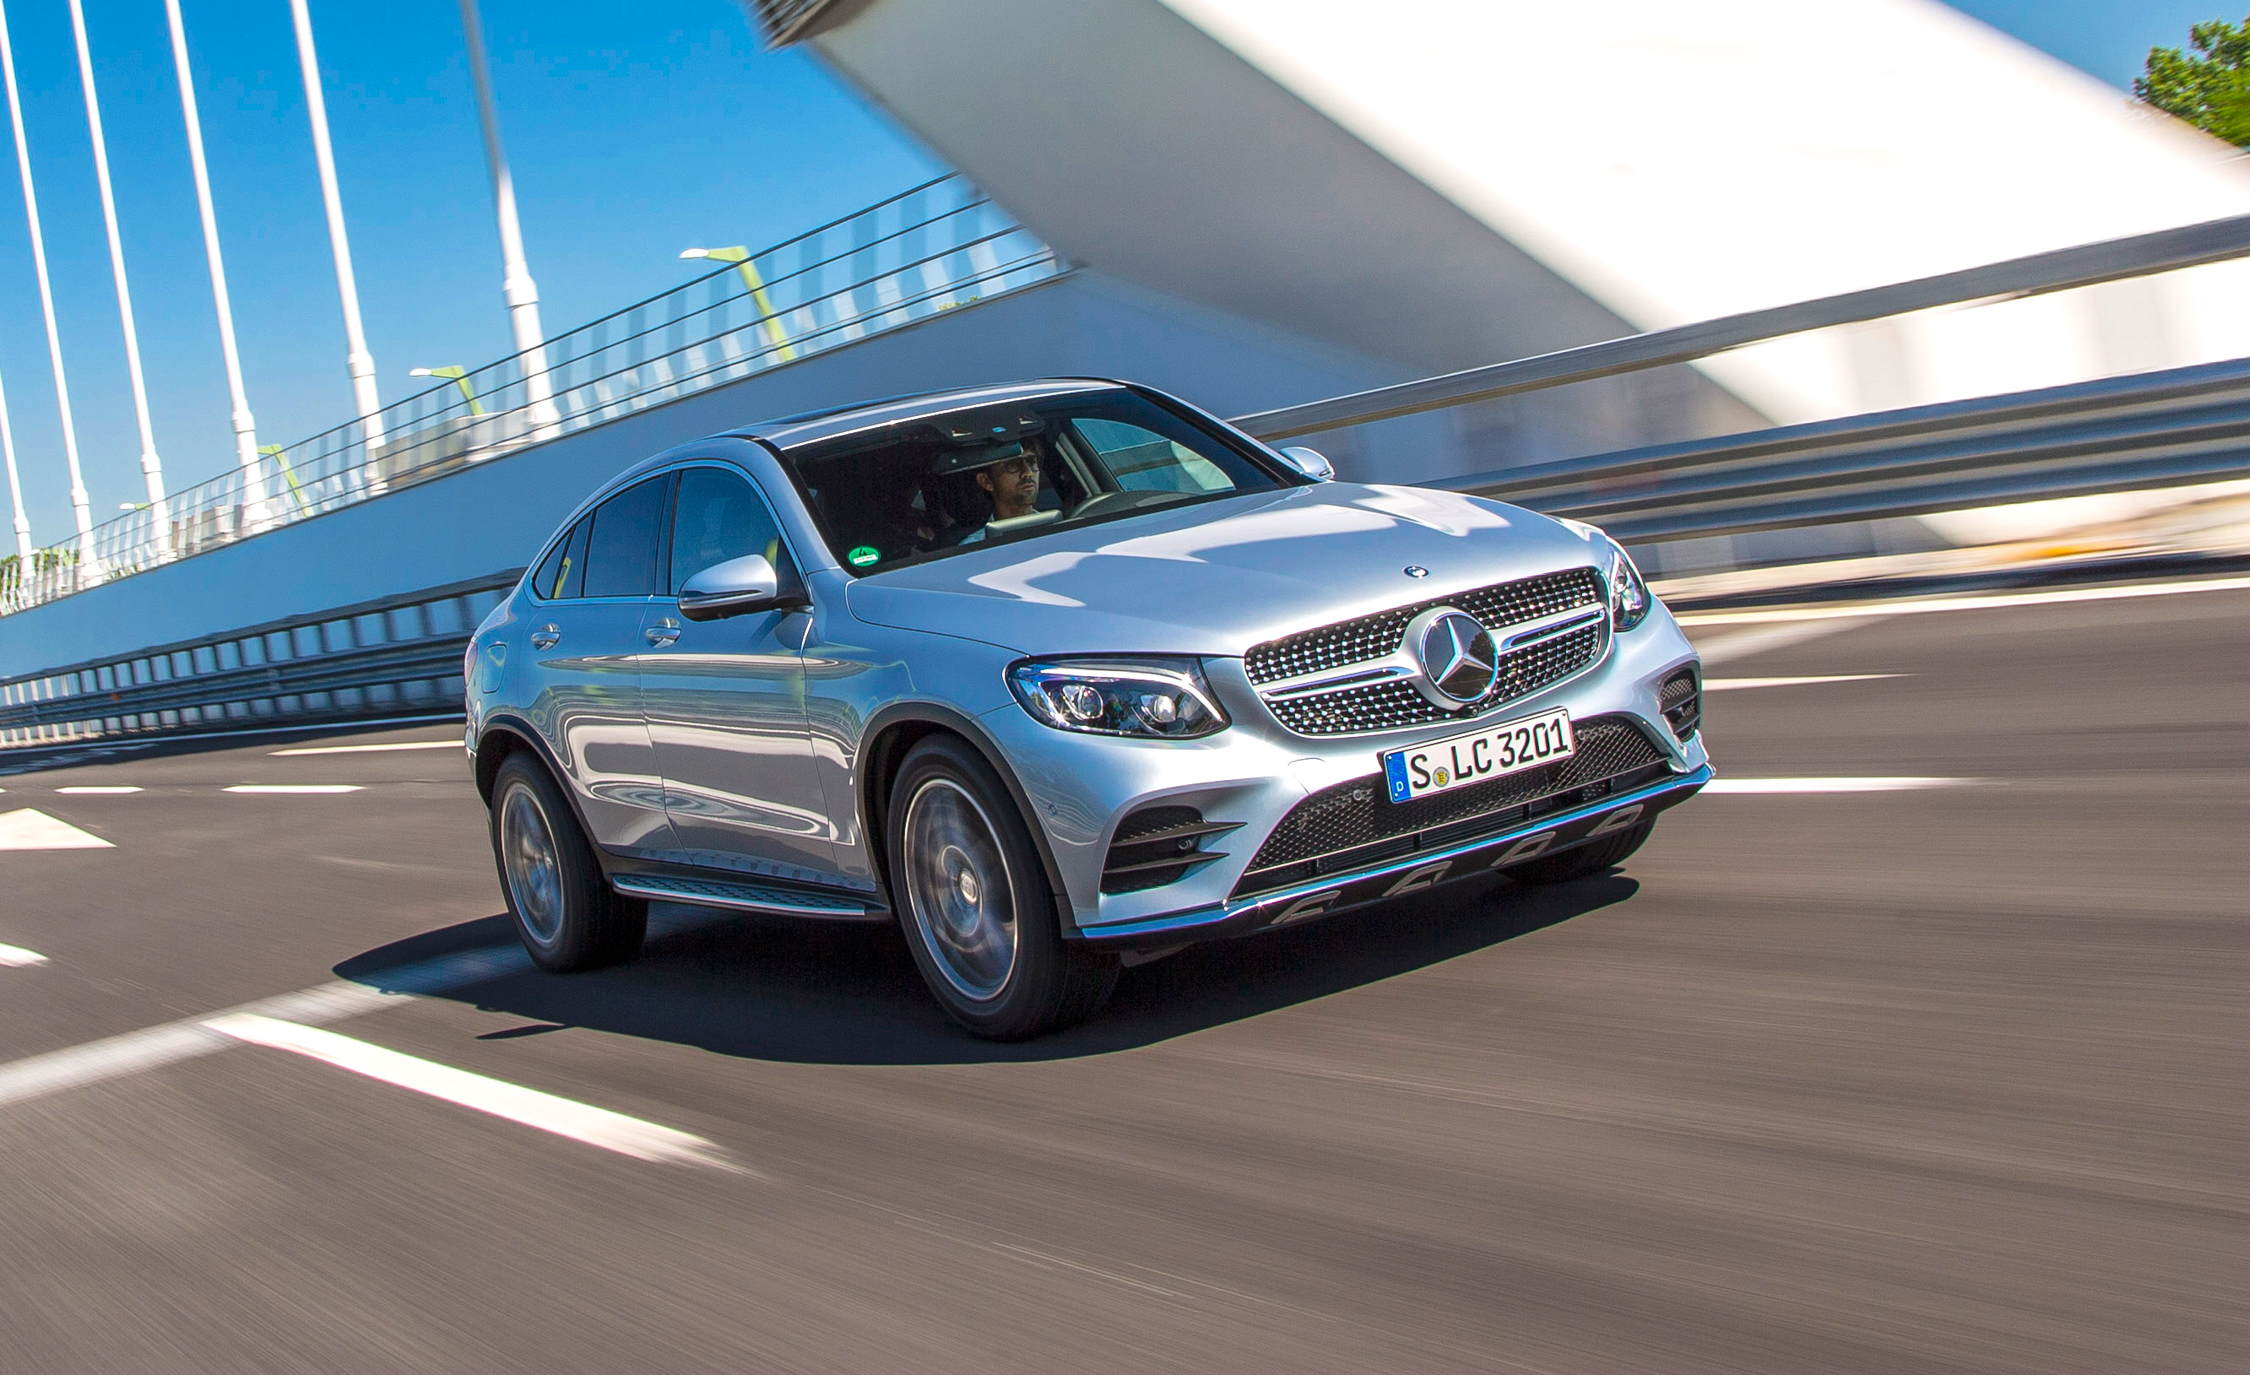 2017 Mercedes Benz GLC300 4MATIC Coupe (Photo 1 of 19)